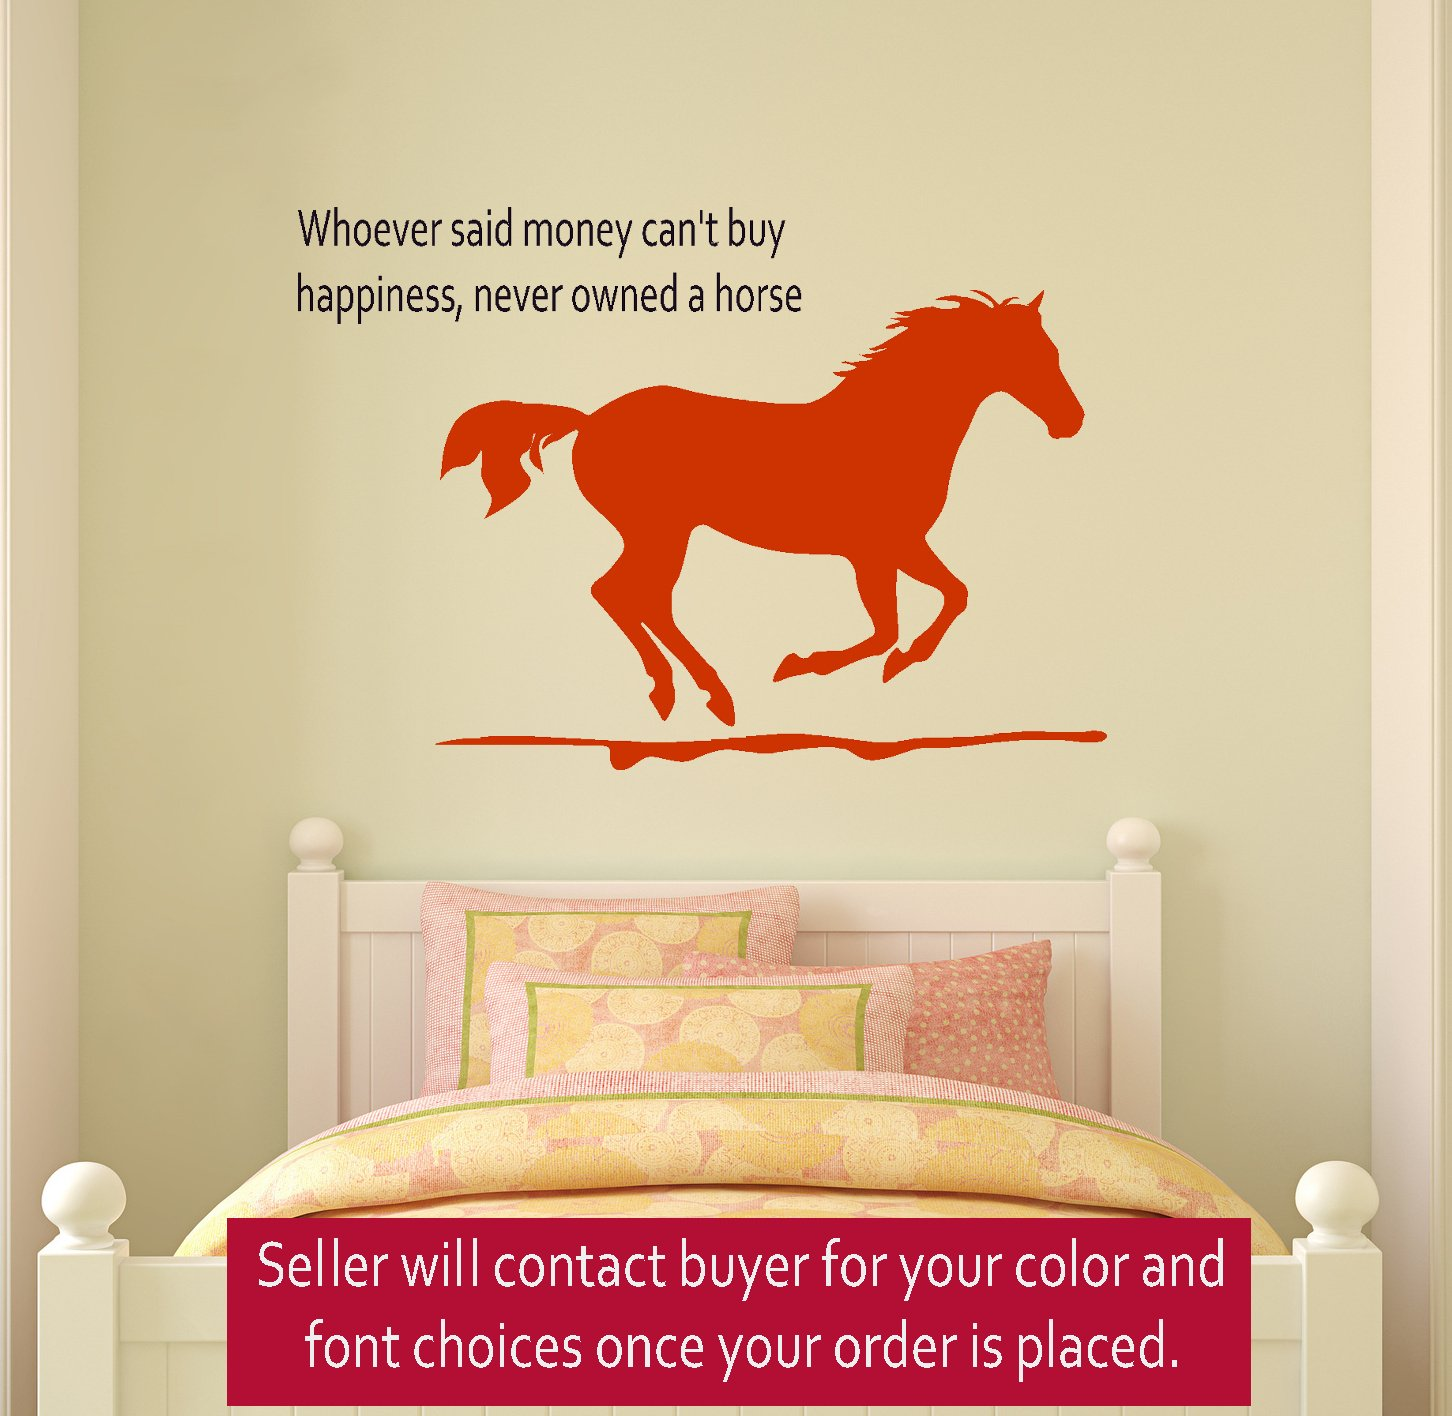 Delicieux Horse Wall Decal, Girls Room Quote Decal, Wall Words Decal, Teen Bedroom  Decal, Dorm Room Decor, 23 X 33 Inches   Wall Decor Stickers   Amazon.com